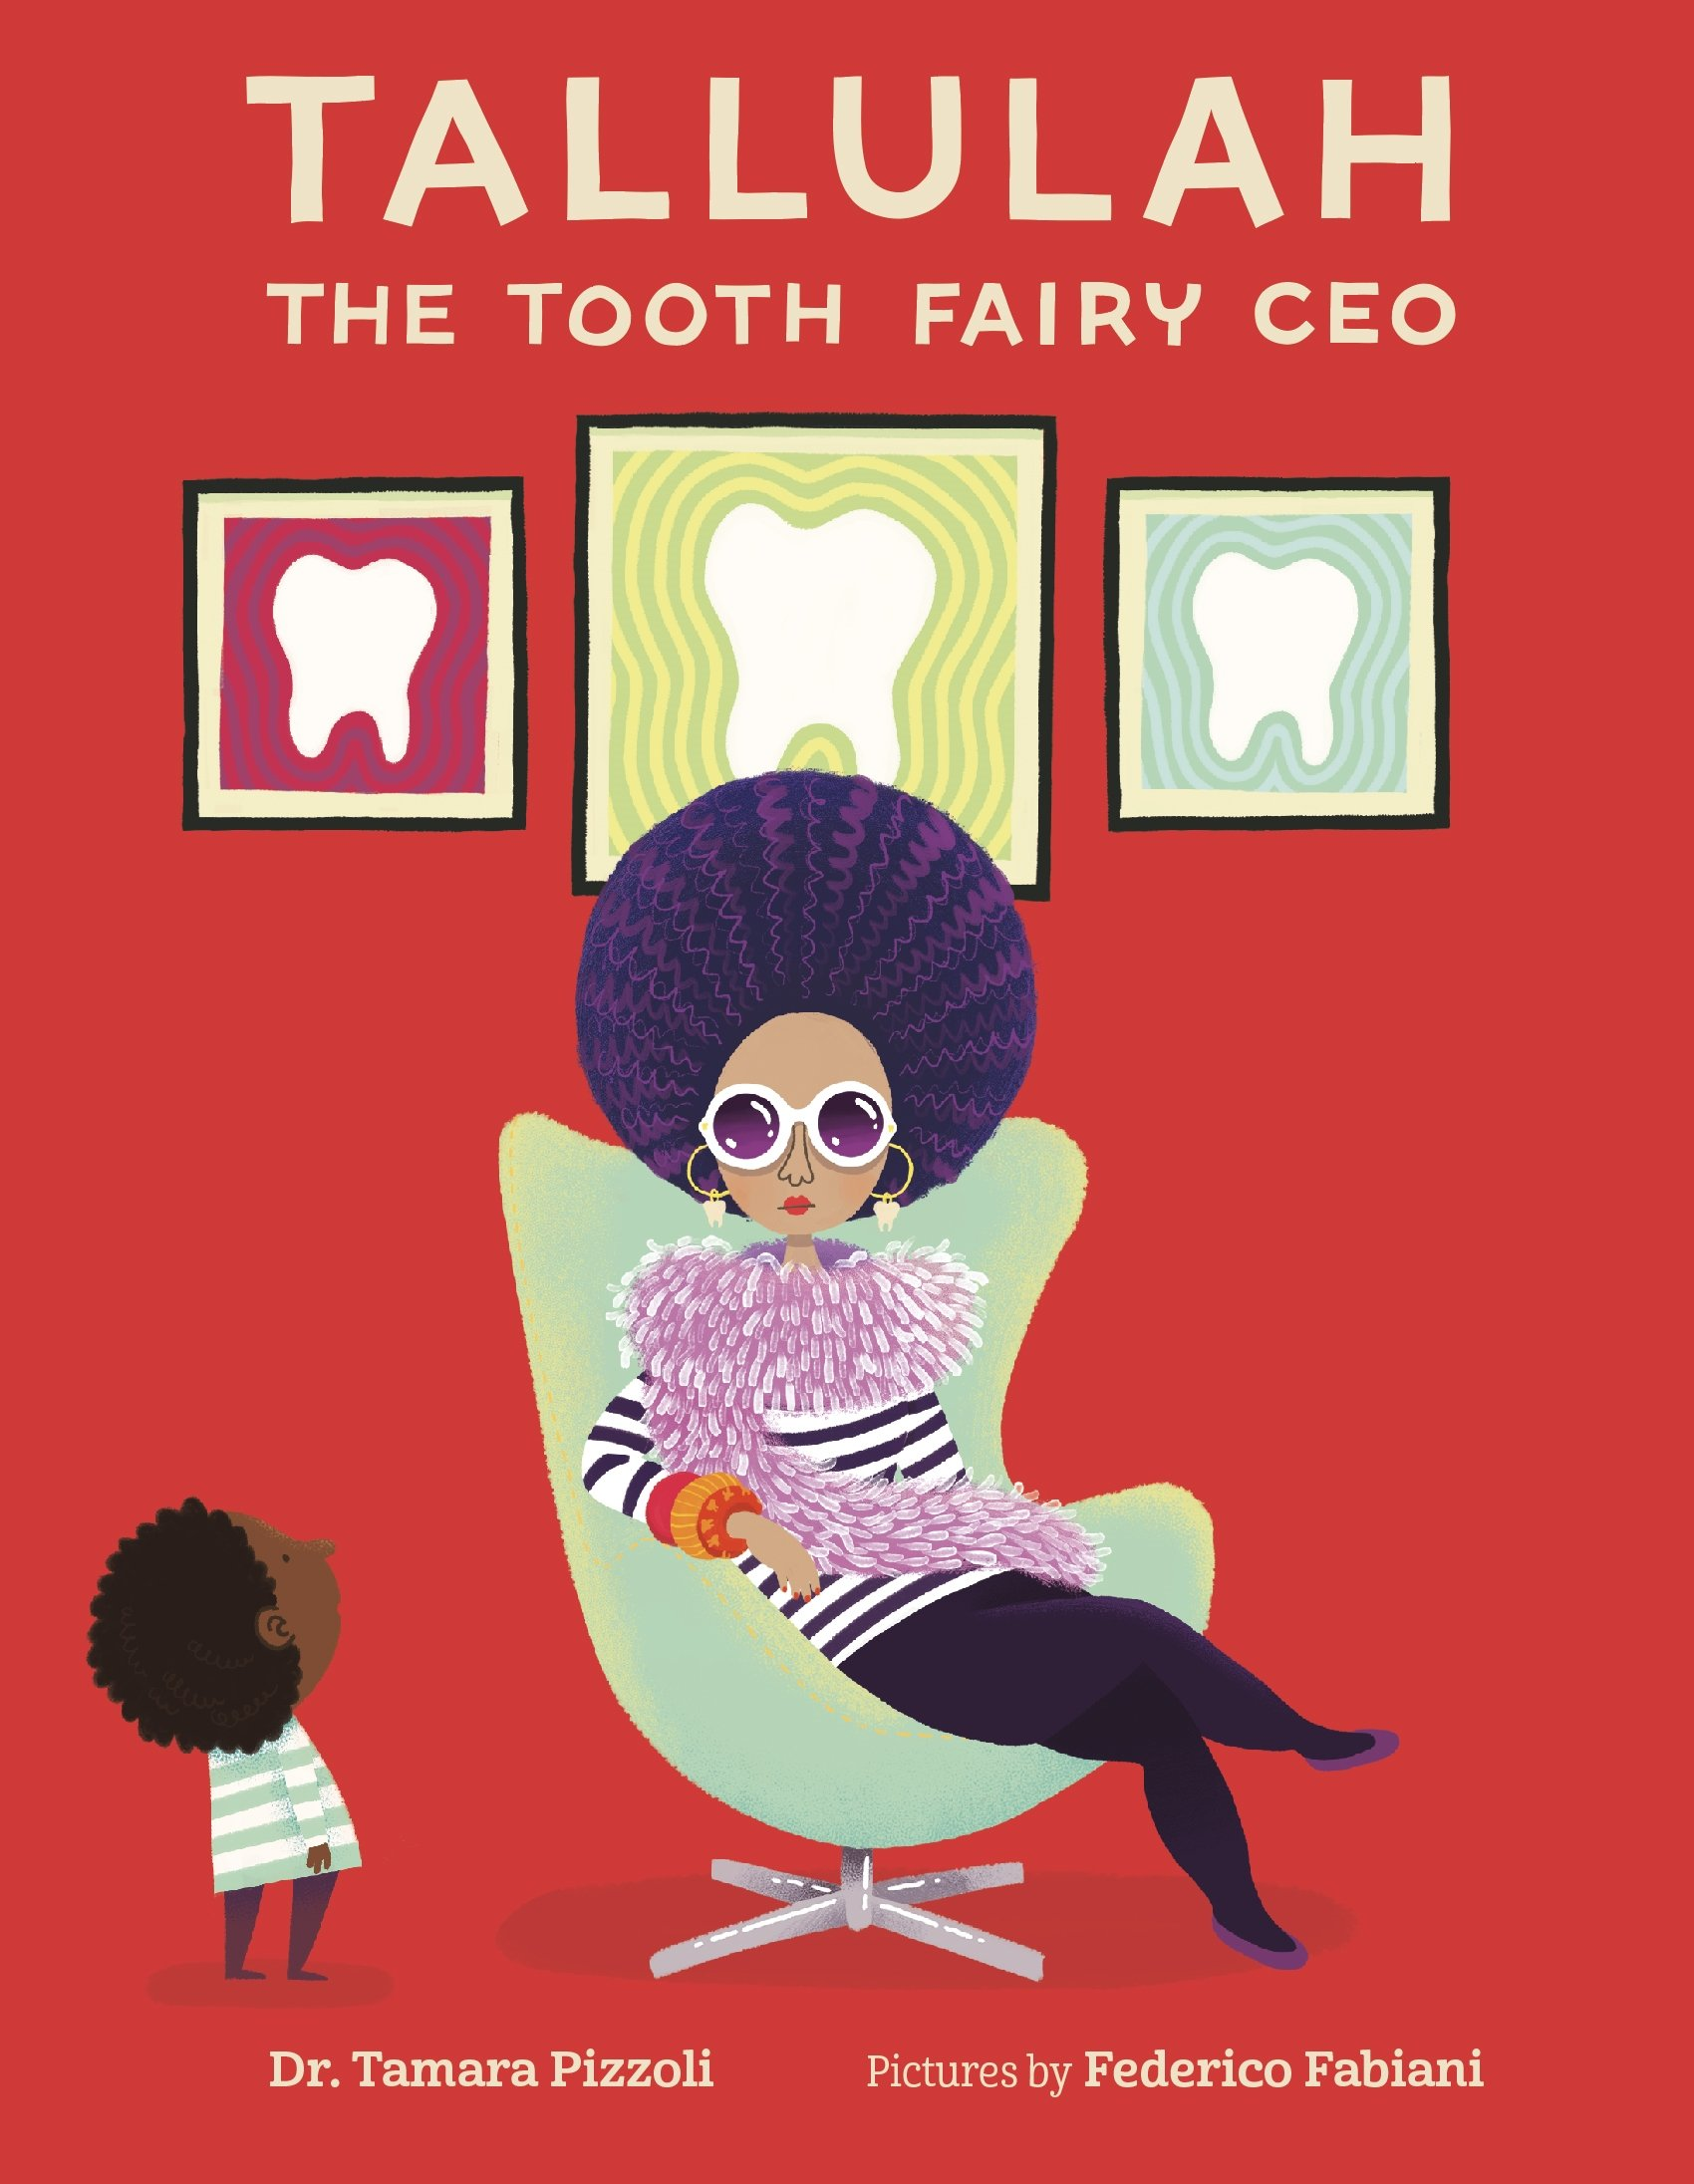 Image result for tallulah the tooth fairy ceo movie